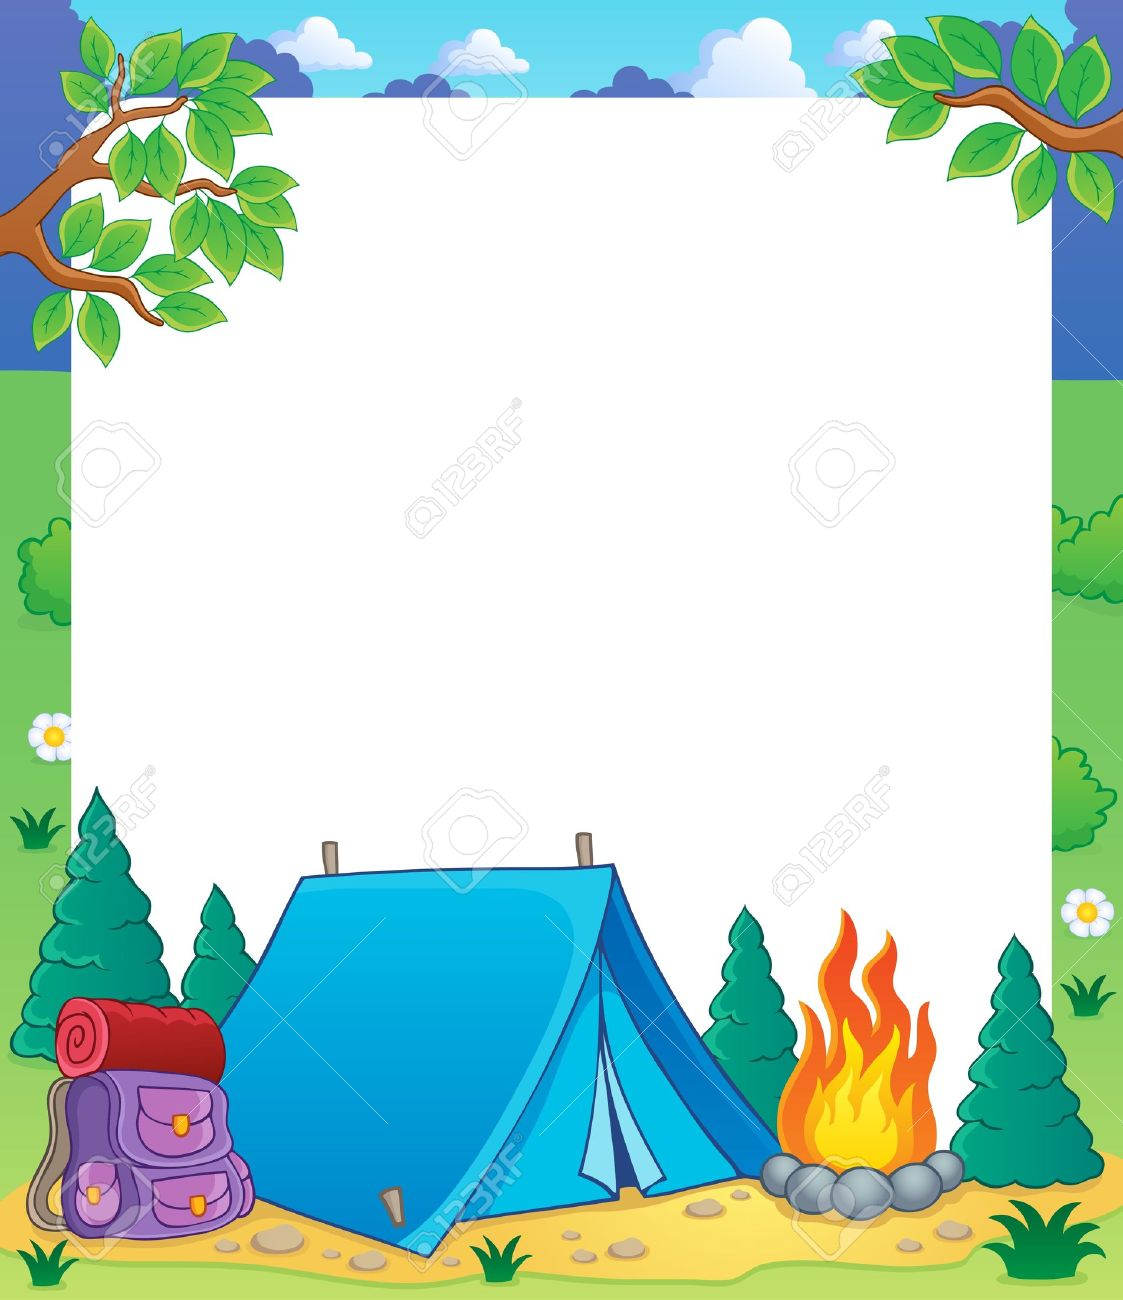 Camping Summer Camp Theme Camping Theme Frame Camping